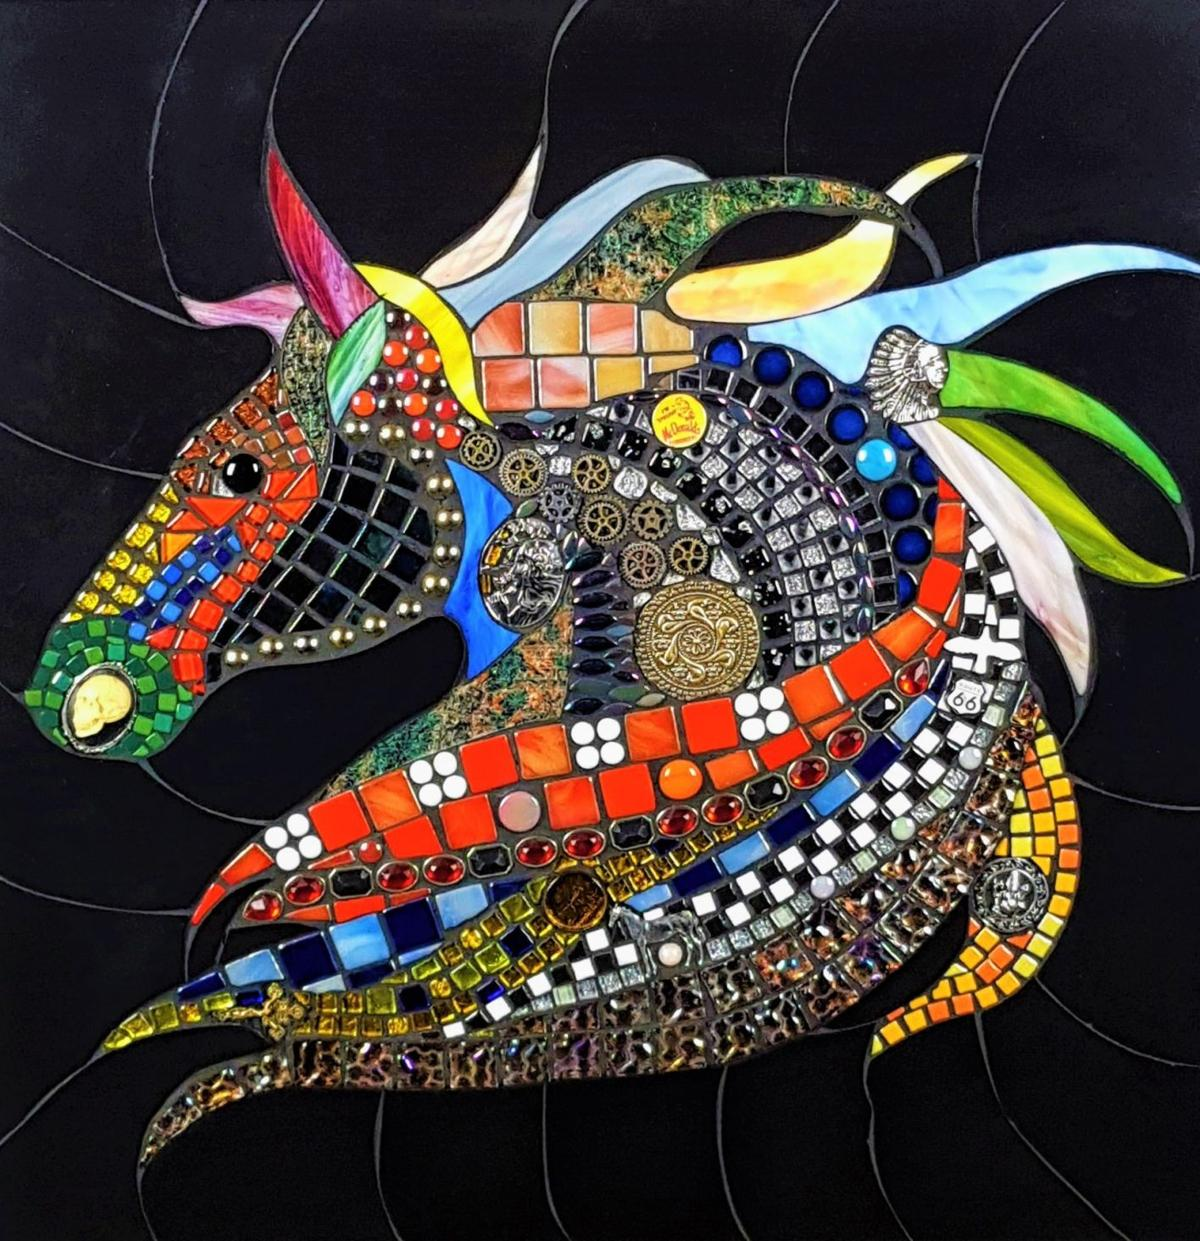 Bandon Art Gallery Mosaic Show 2020 - 'Crazy Horse' by Tony Welch